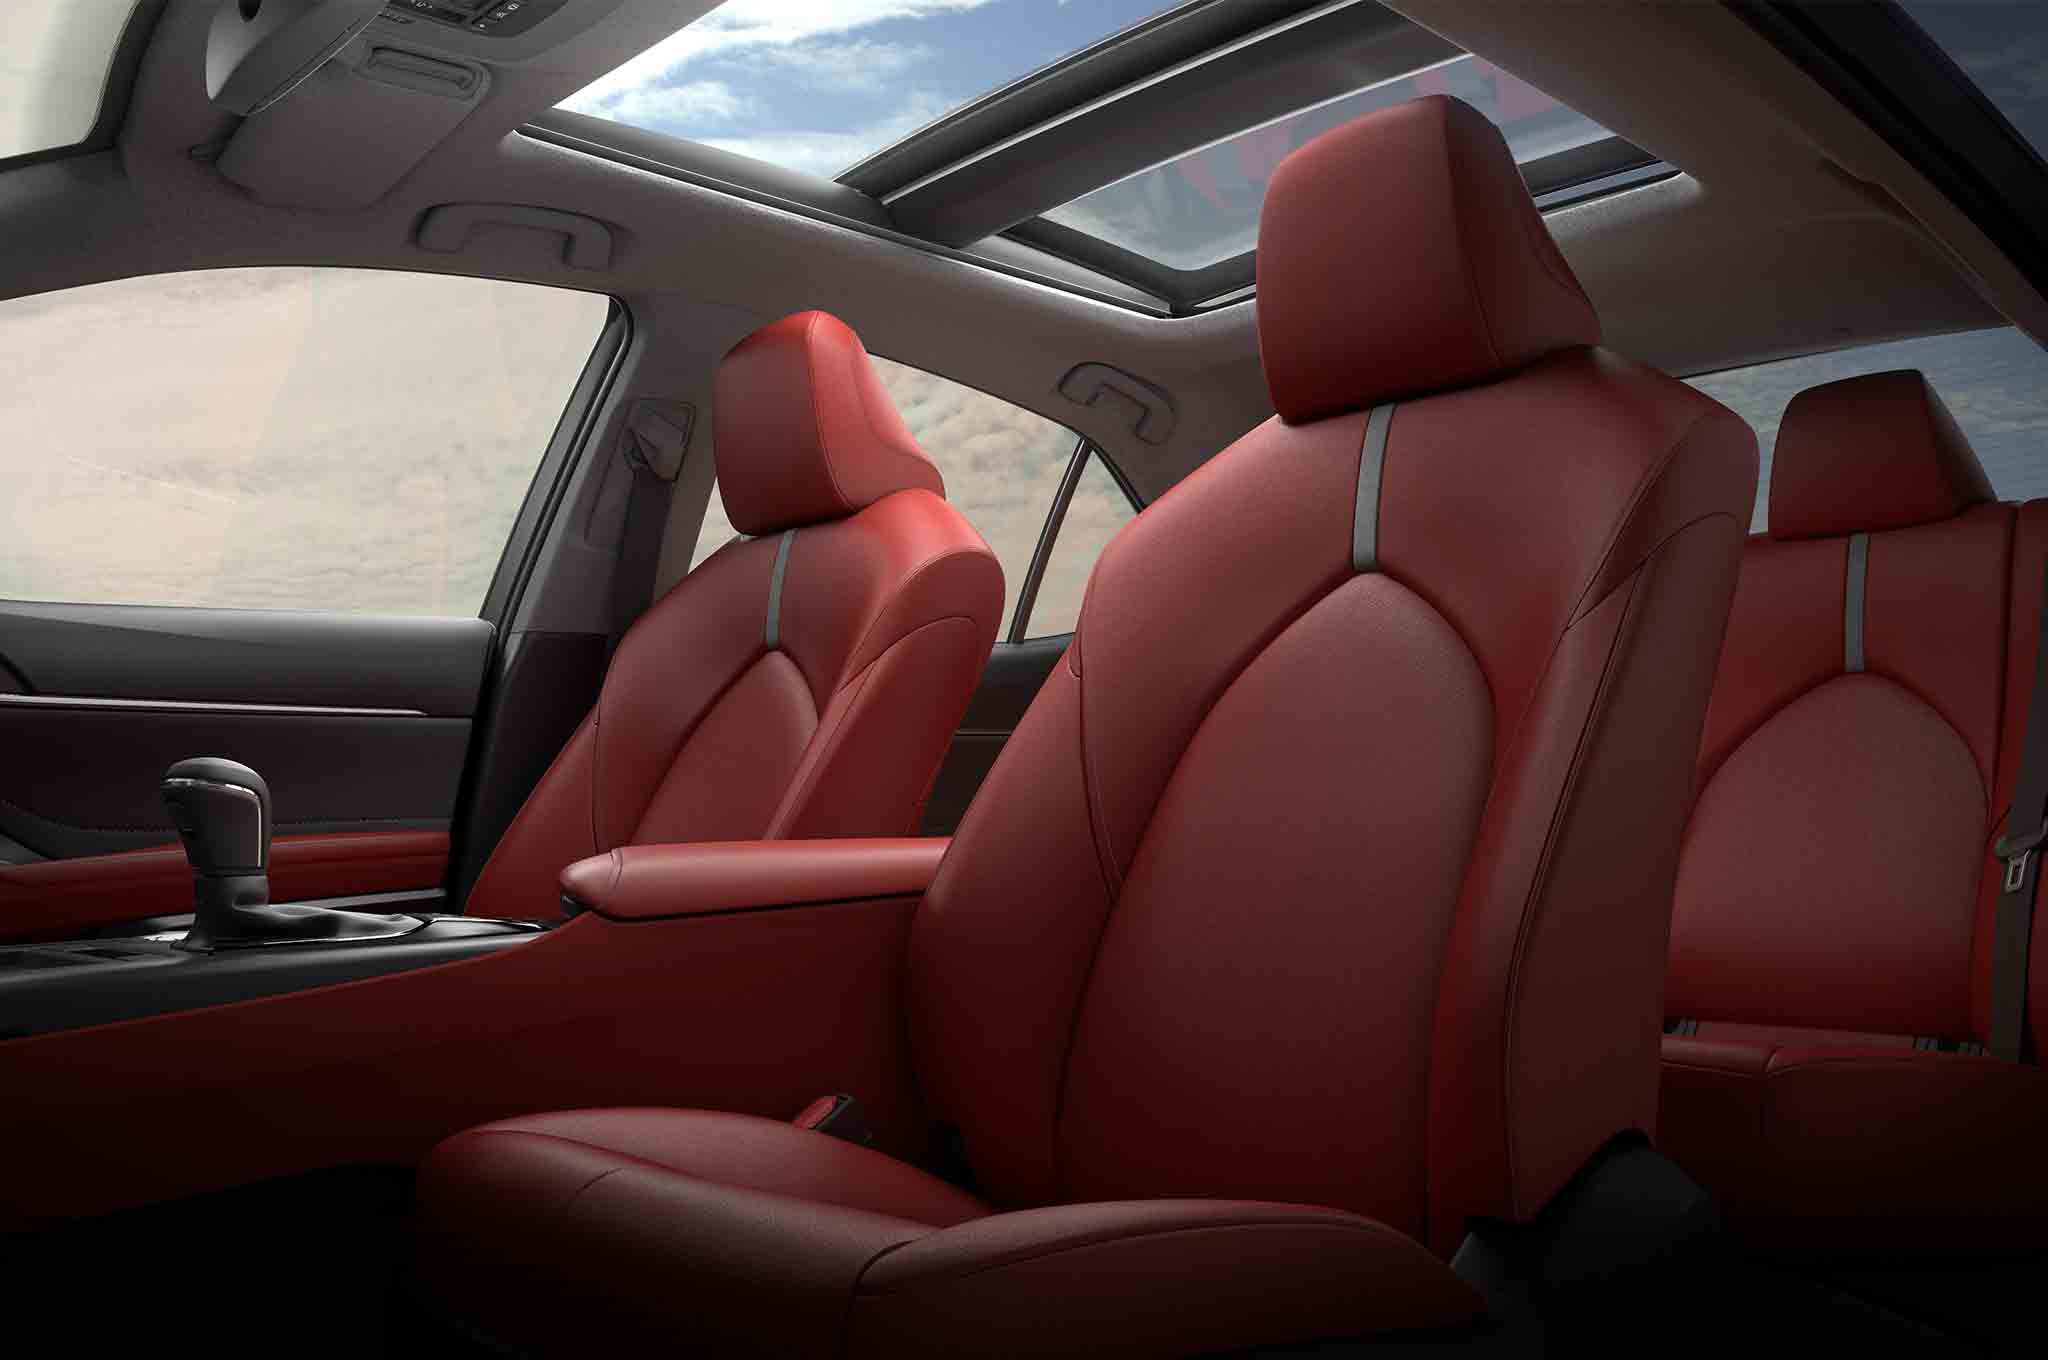 2018-Toyota-Camry-XSE-seats